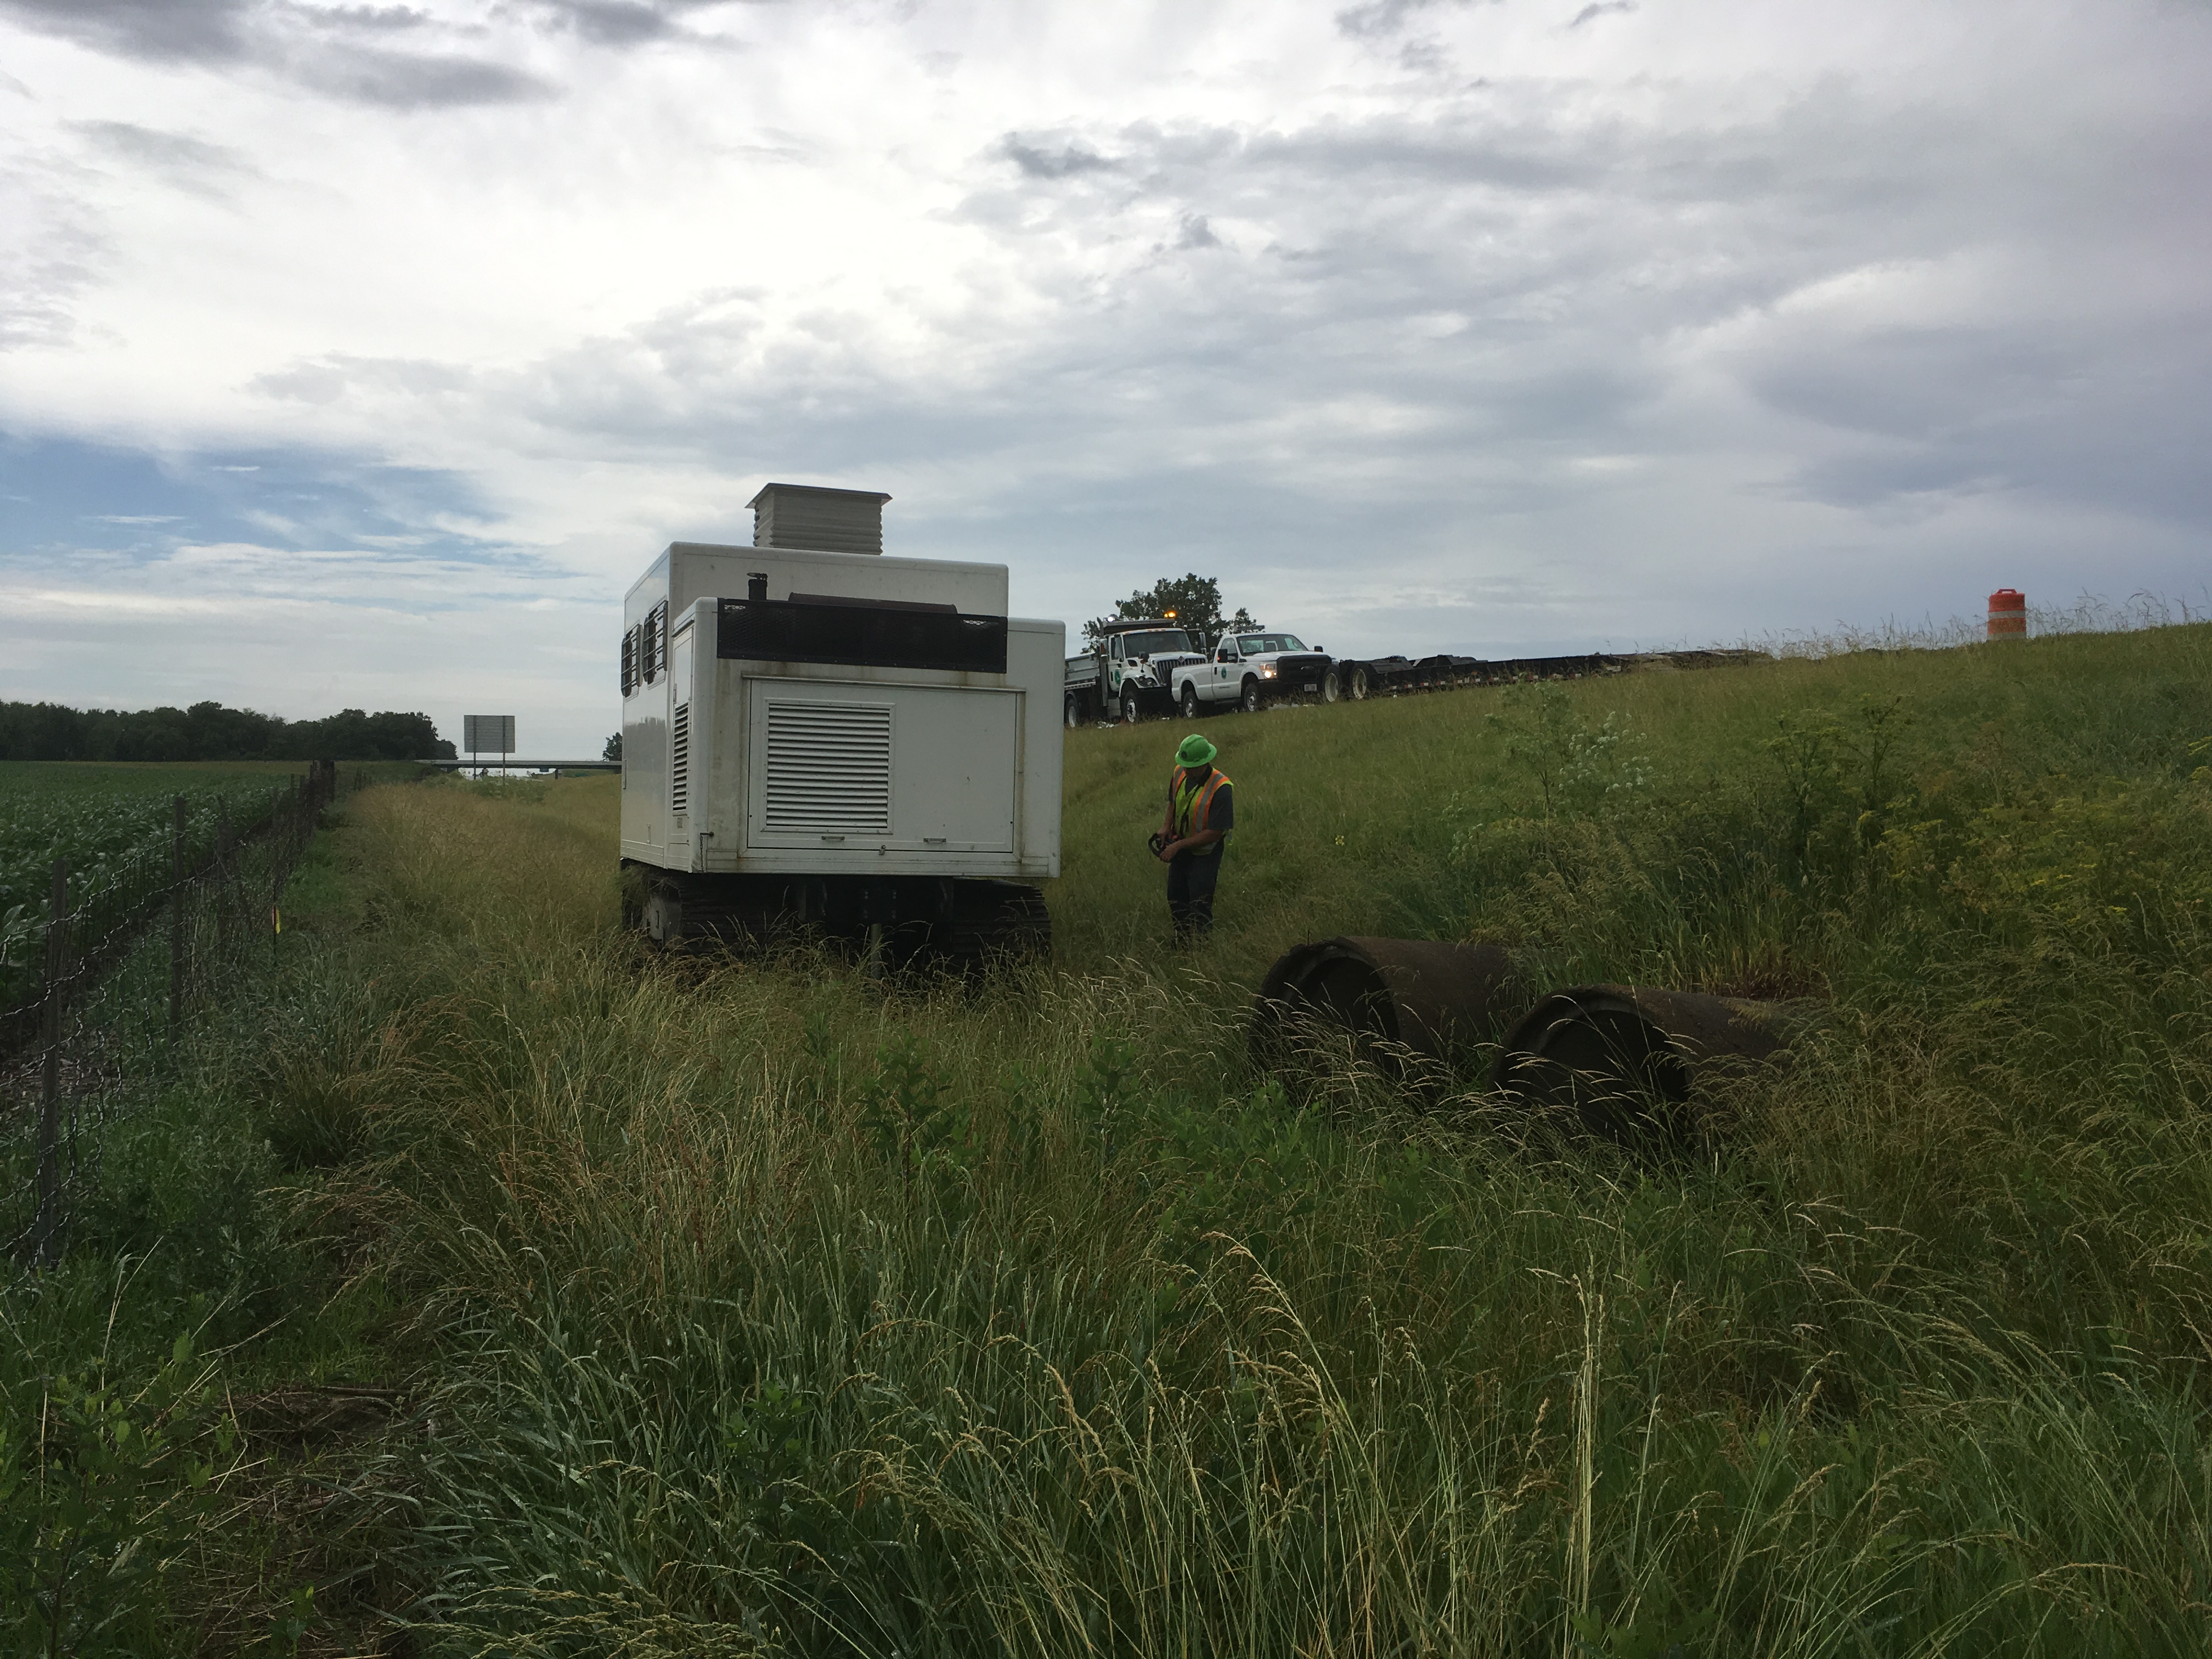 CPT Rig tracking off road for Culvert Exploration